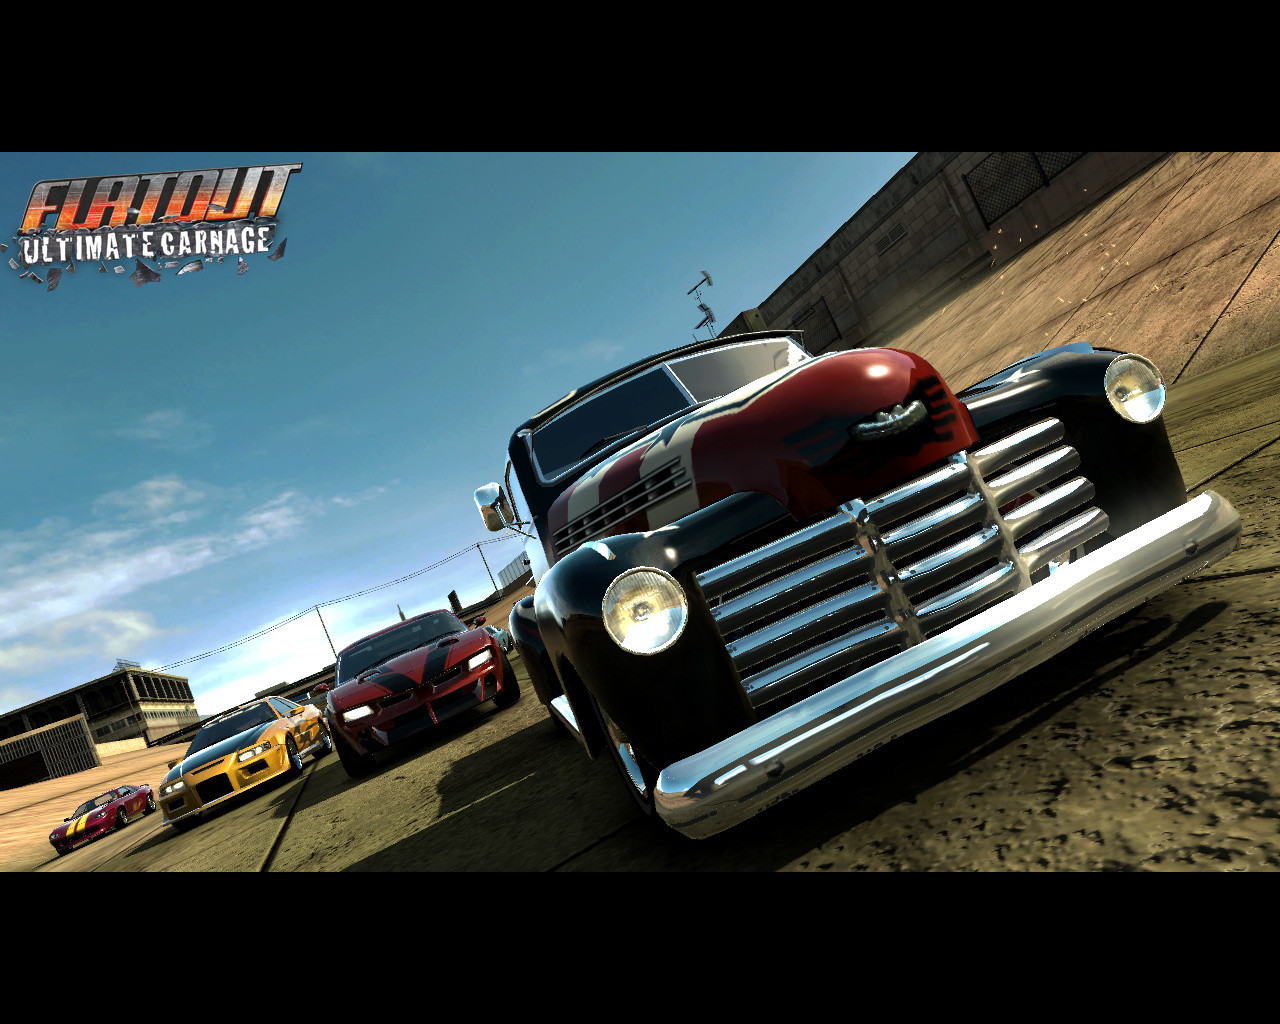 brand new flatout ultimate carnage wallpaper brand new wallpaper brand 1280x1024